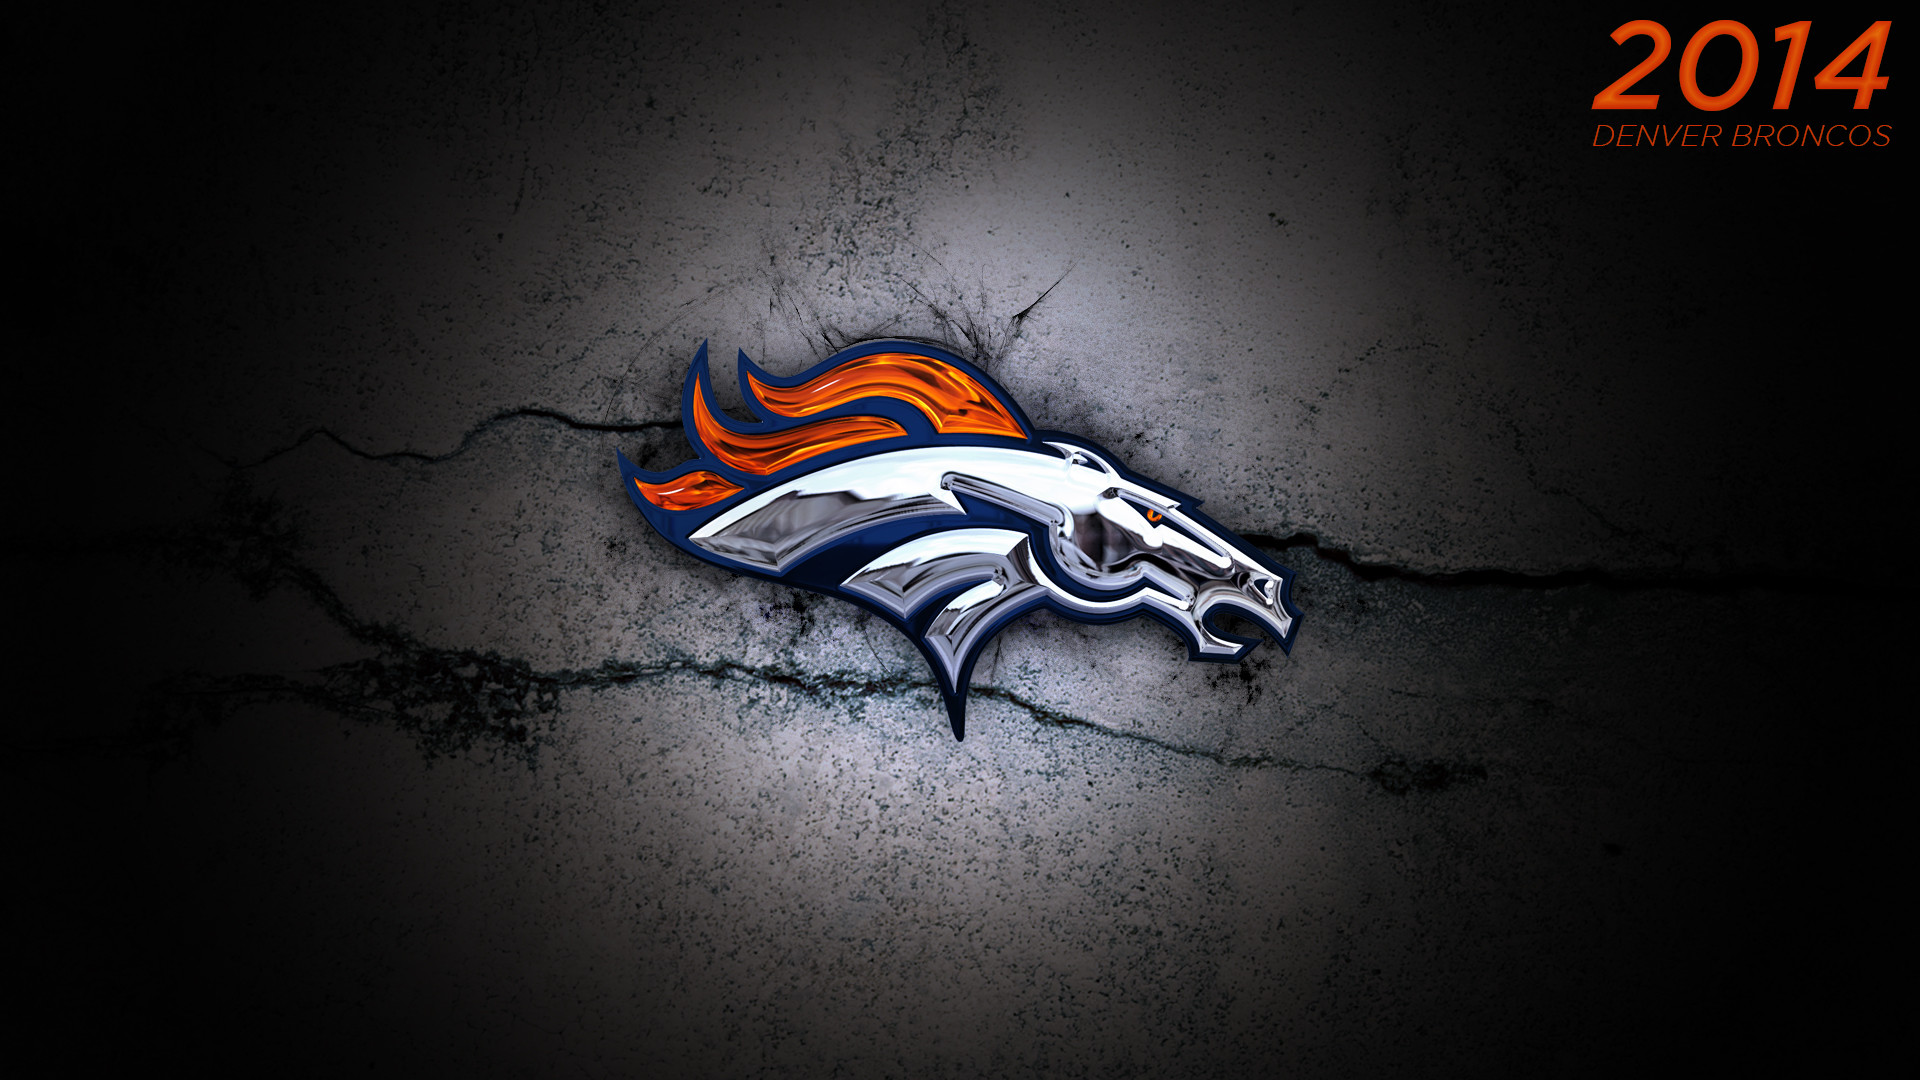 1920x1080 Images denver broncos schedule 2015 wallpaper page 5